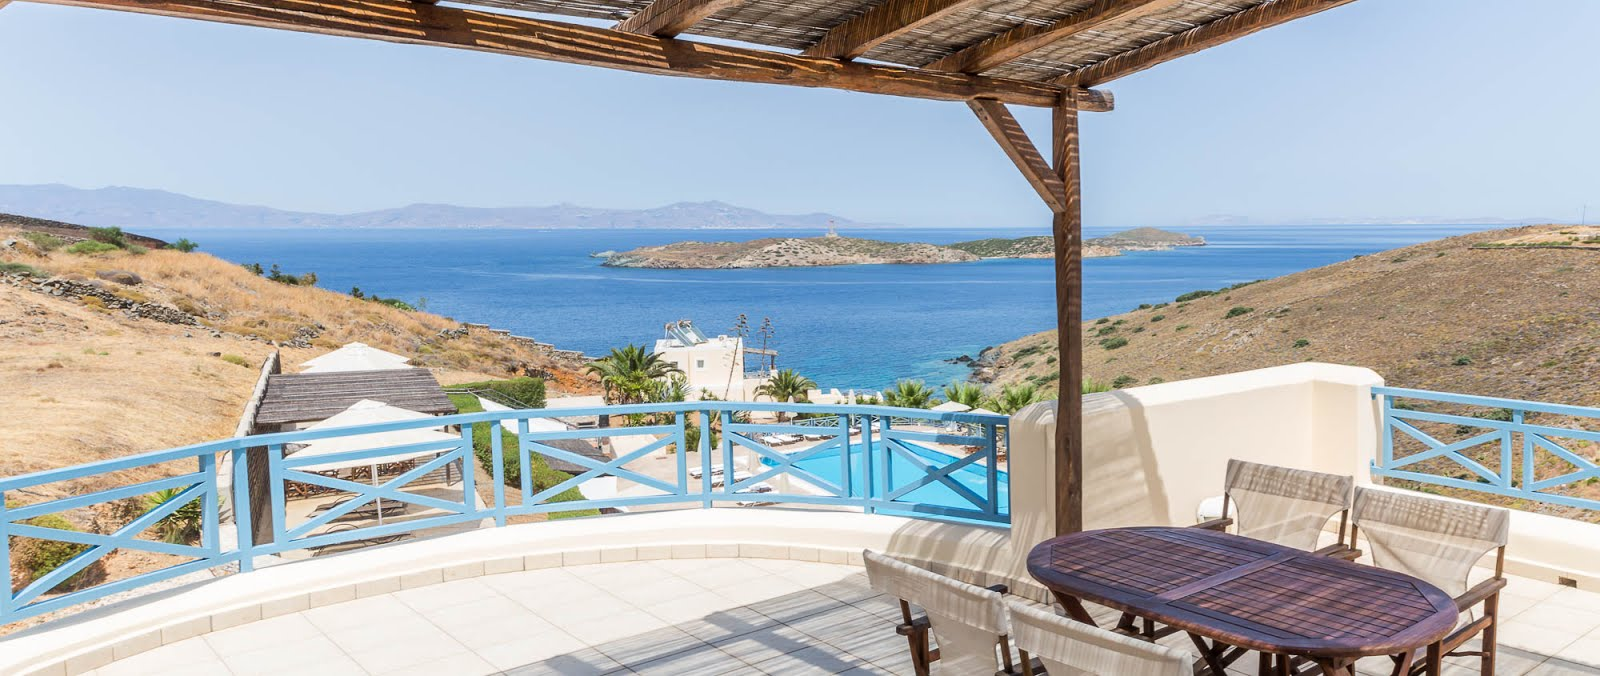 Appartement location Syros